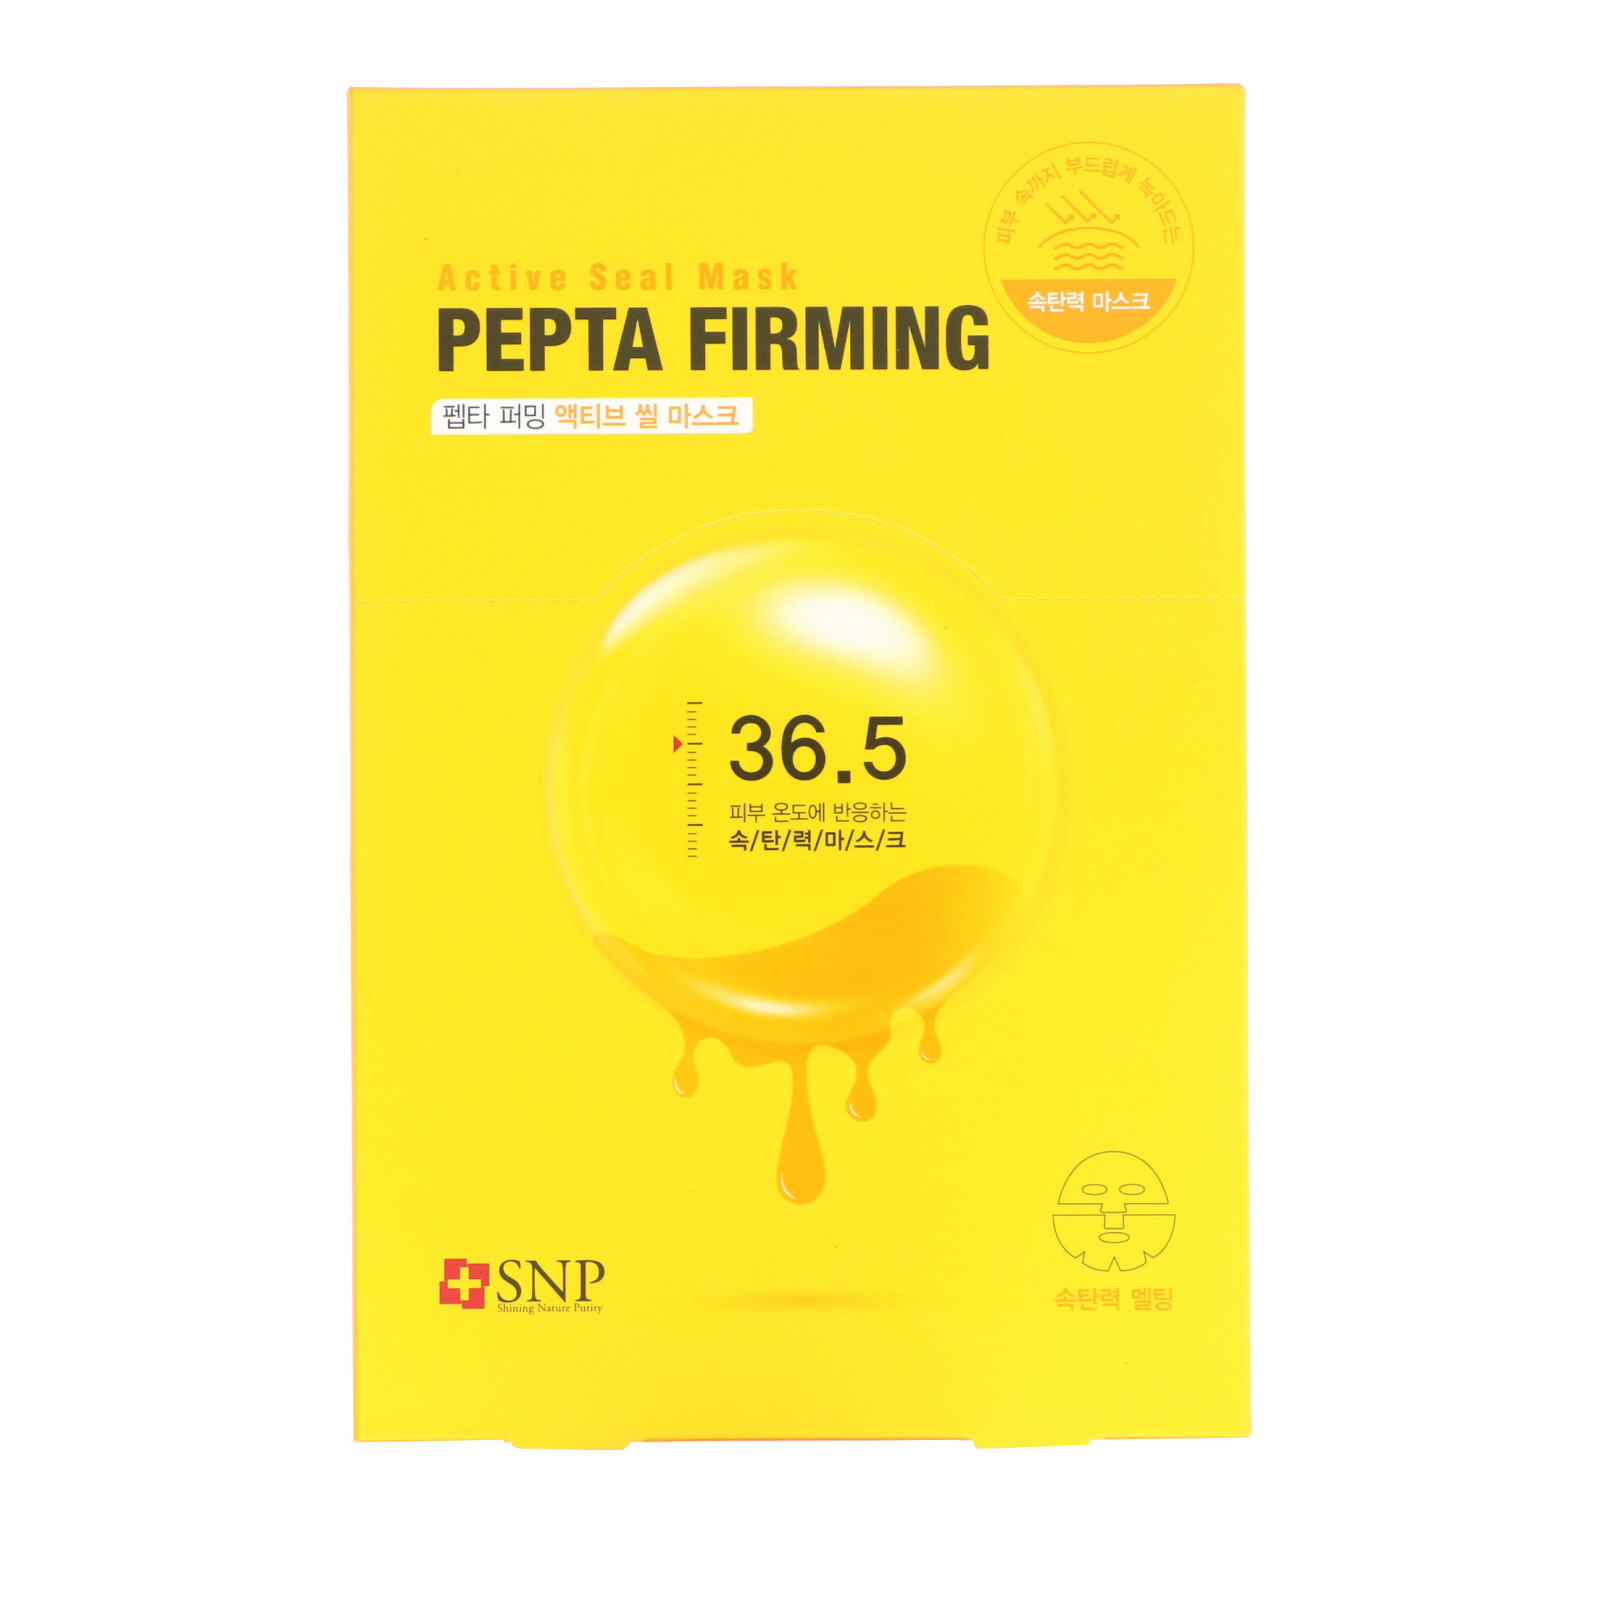 SNP, Pepta Firming, Active Seal Mask, 5 Sheets, 1.11 fl oz (33 ml) Each